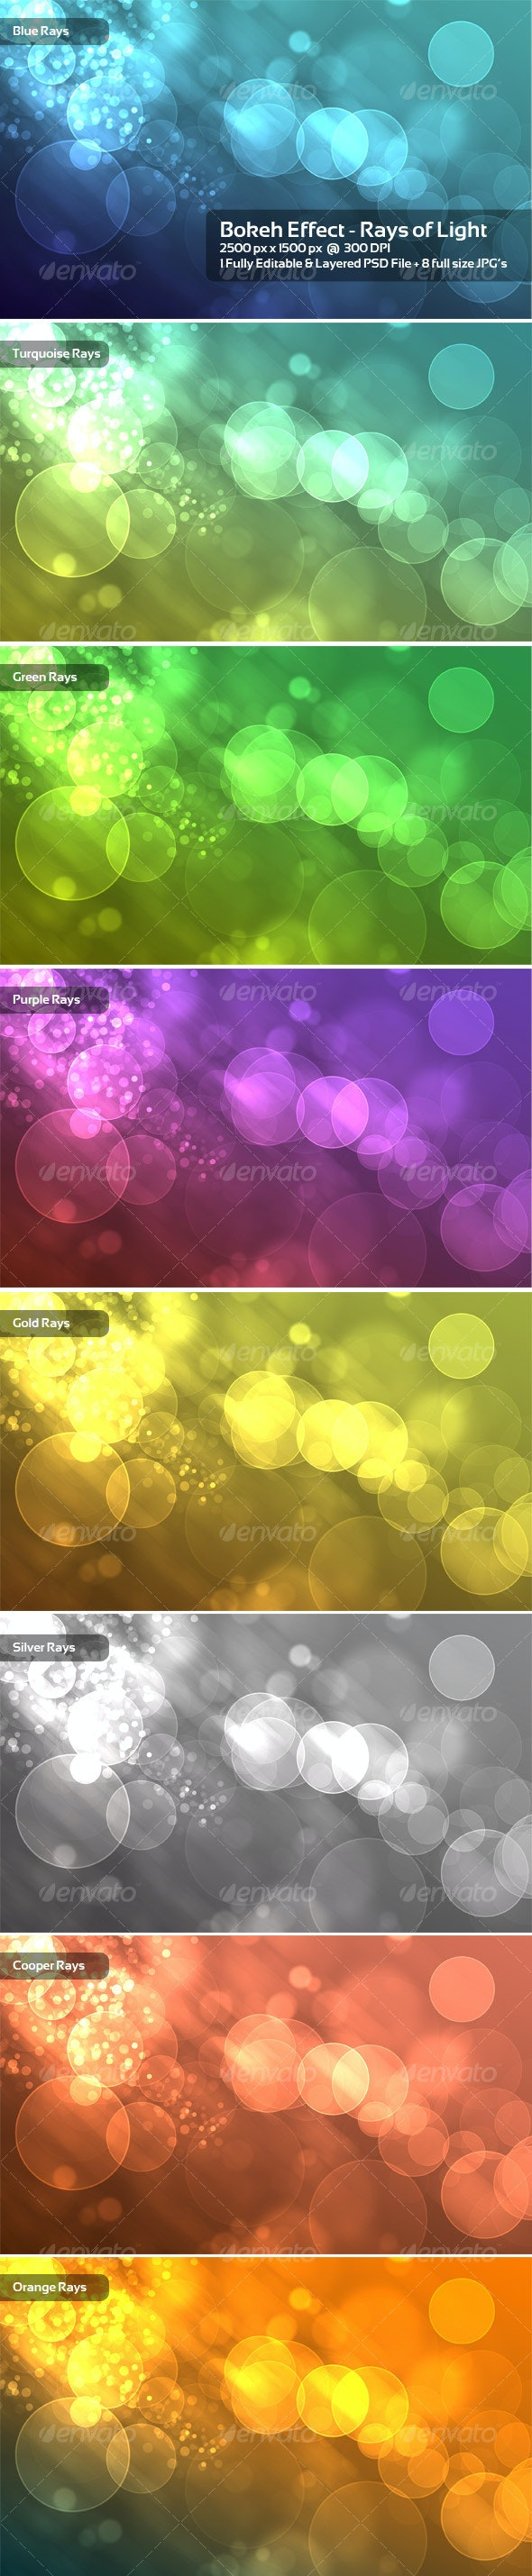 Bokeh Effect - Rays of Light - Backgrounds Graphics